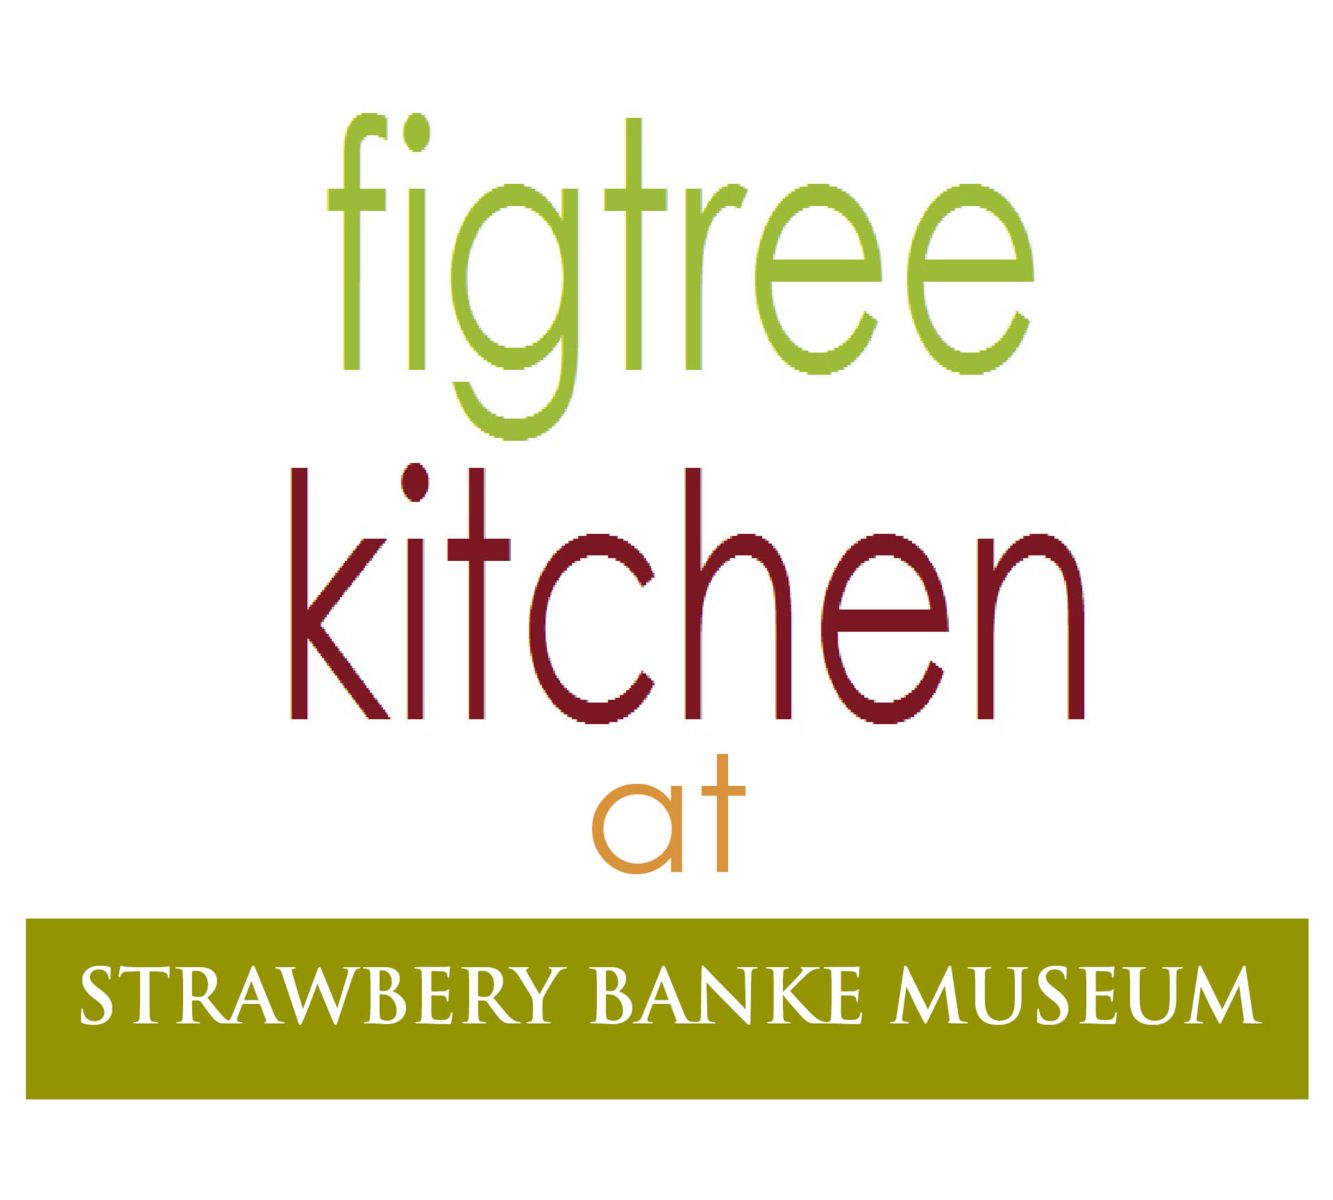 Welcome to Figtree Kitchen Cafe at Strawbery Banke.